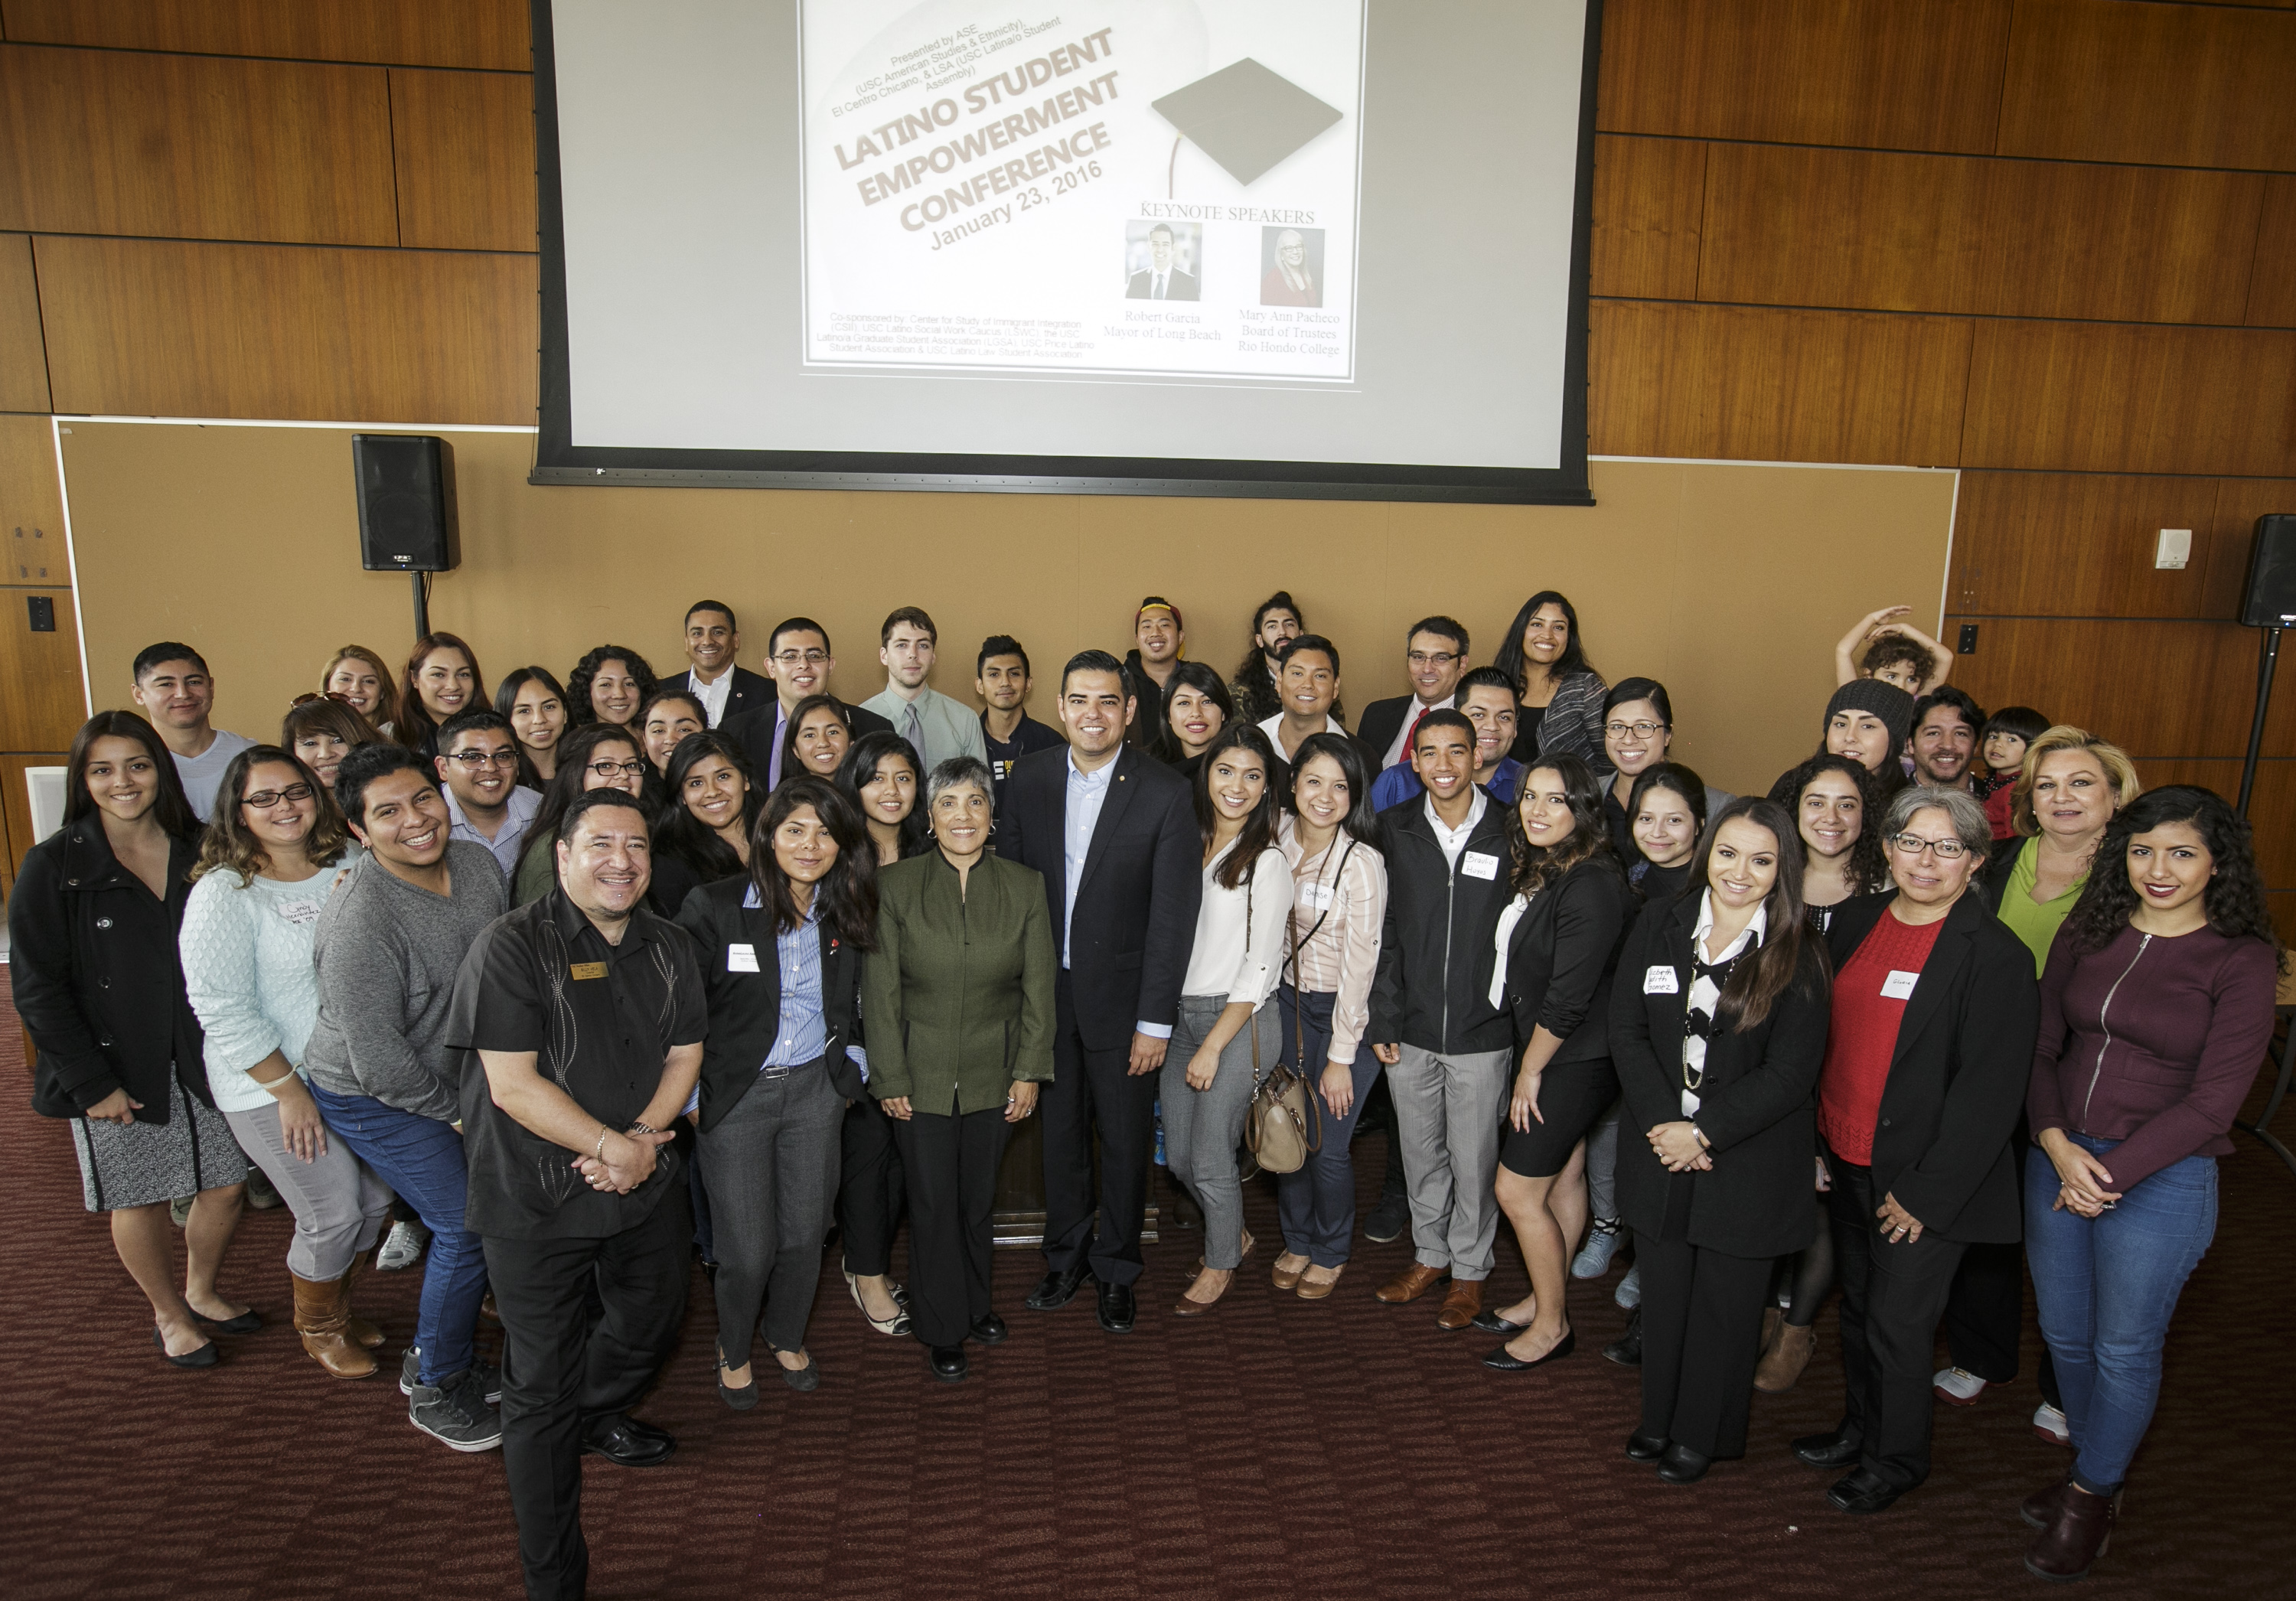 Posing at the end of the 5th Annual Latino Student Empowerment Conference Jan. 23 , 2016 at USC. Photo by David Sprague